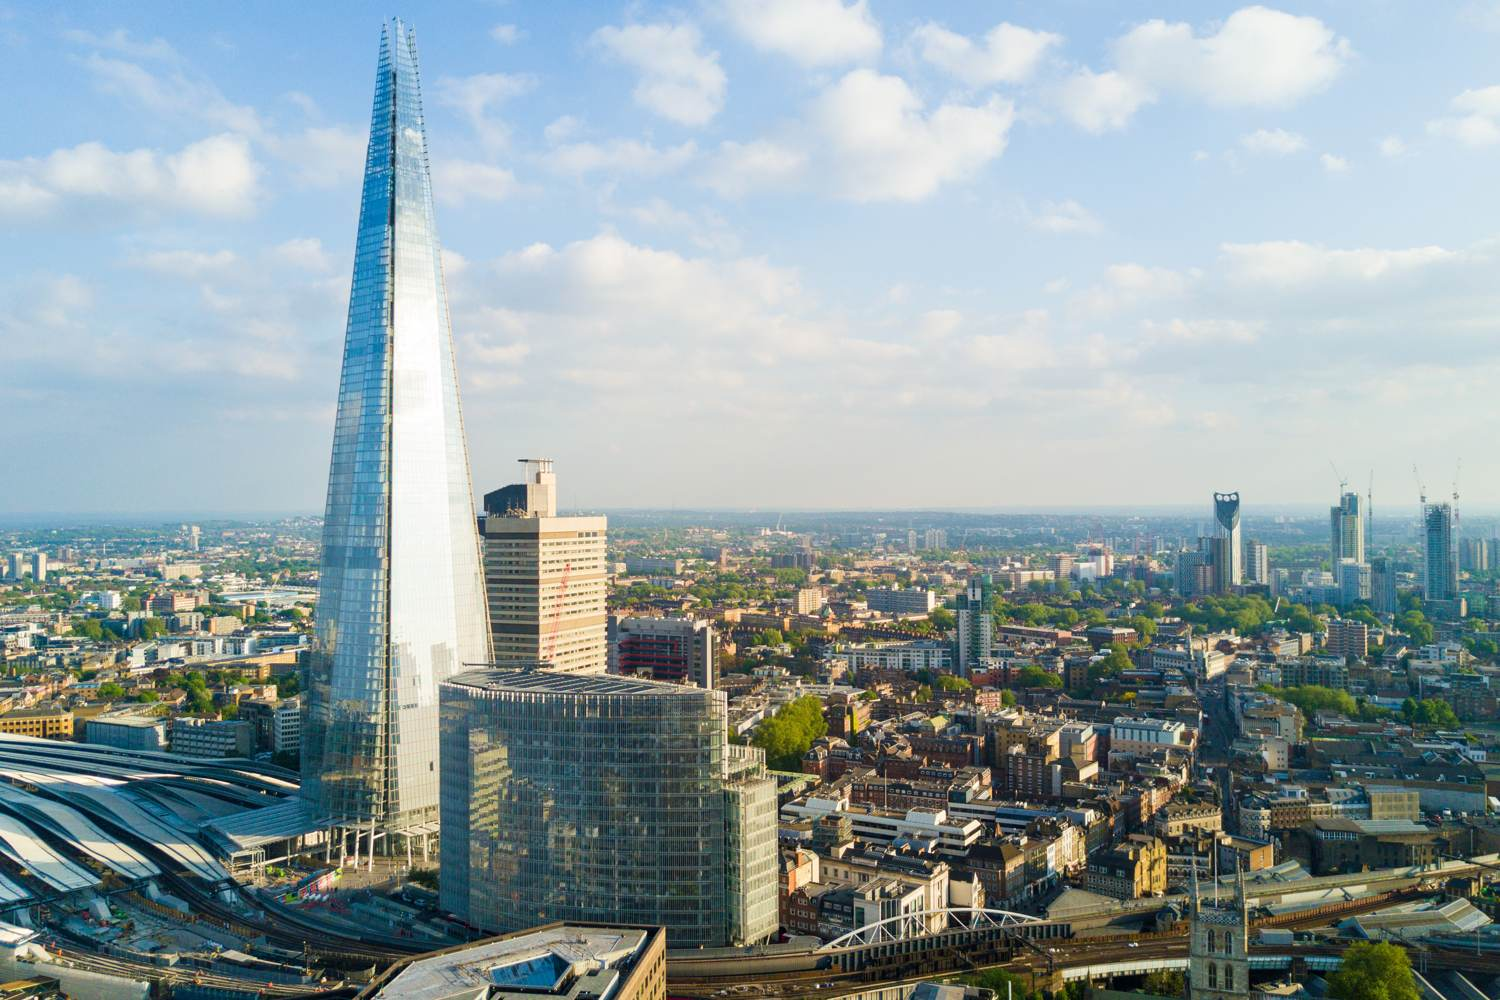 View of the Shard in London on a sunny day